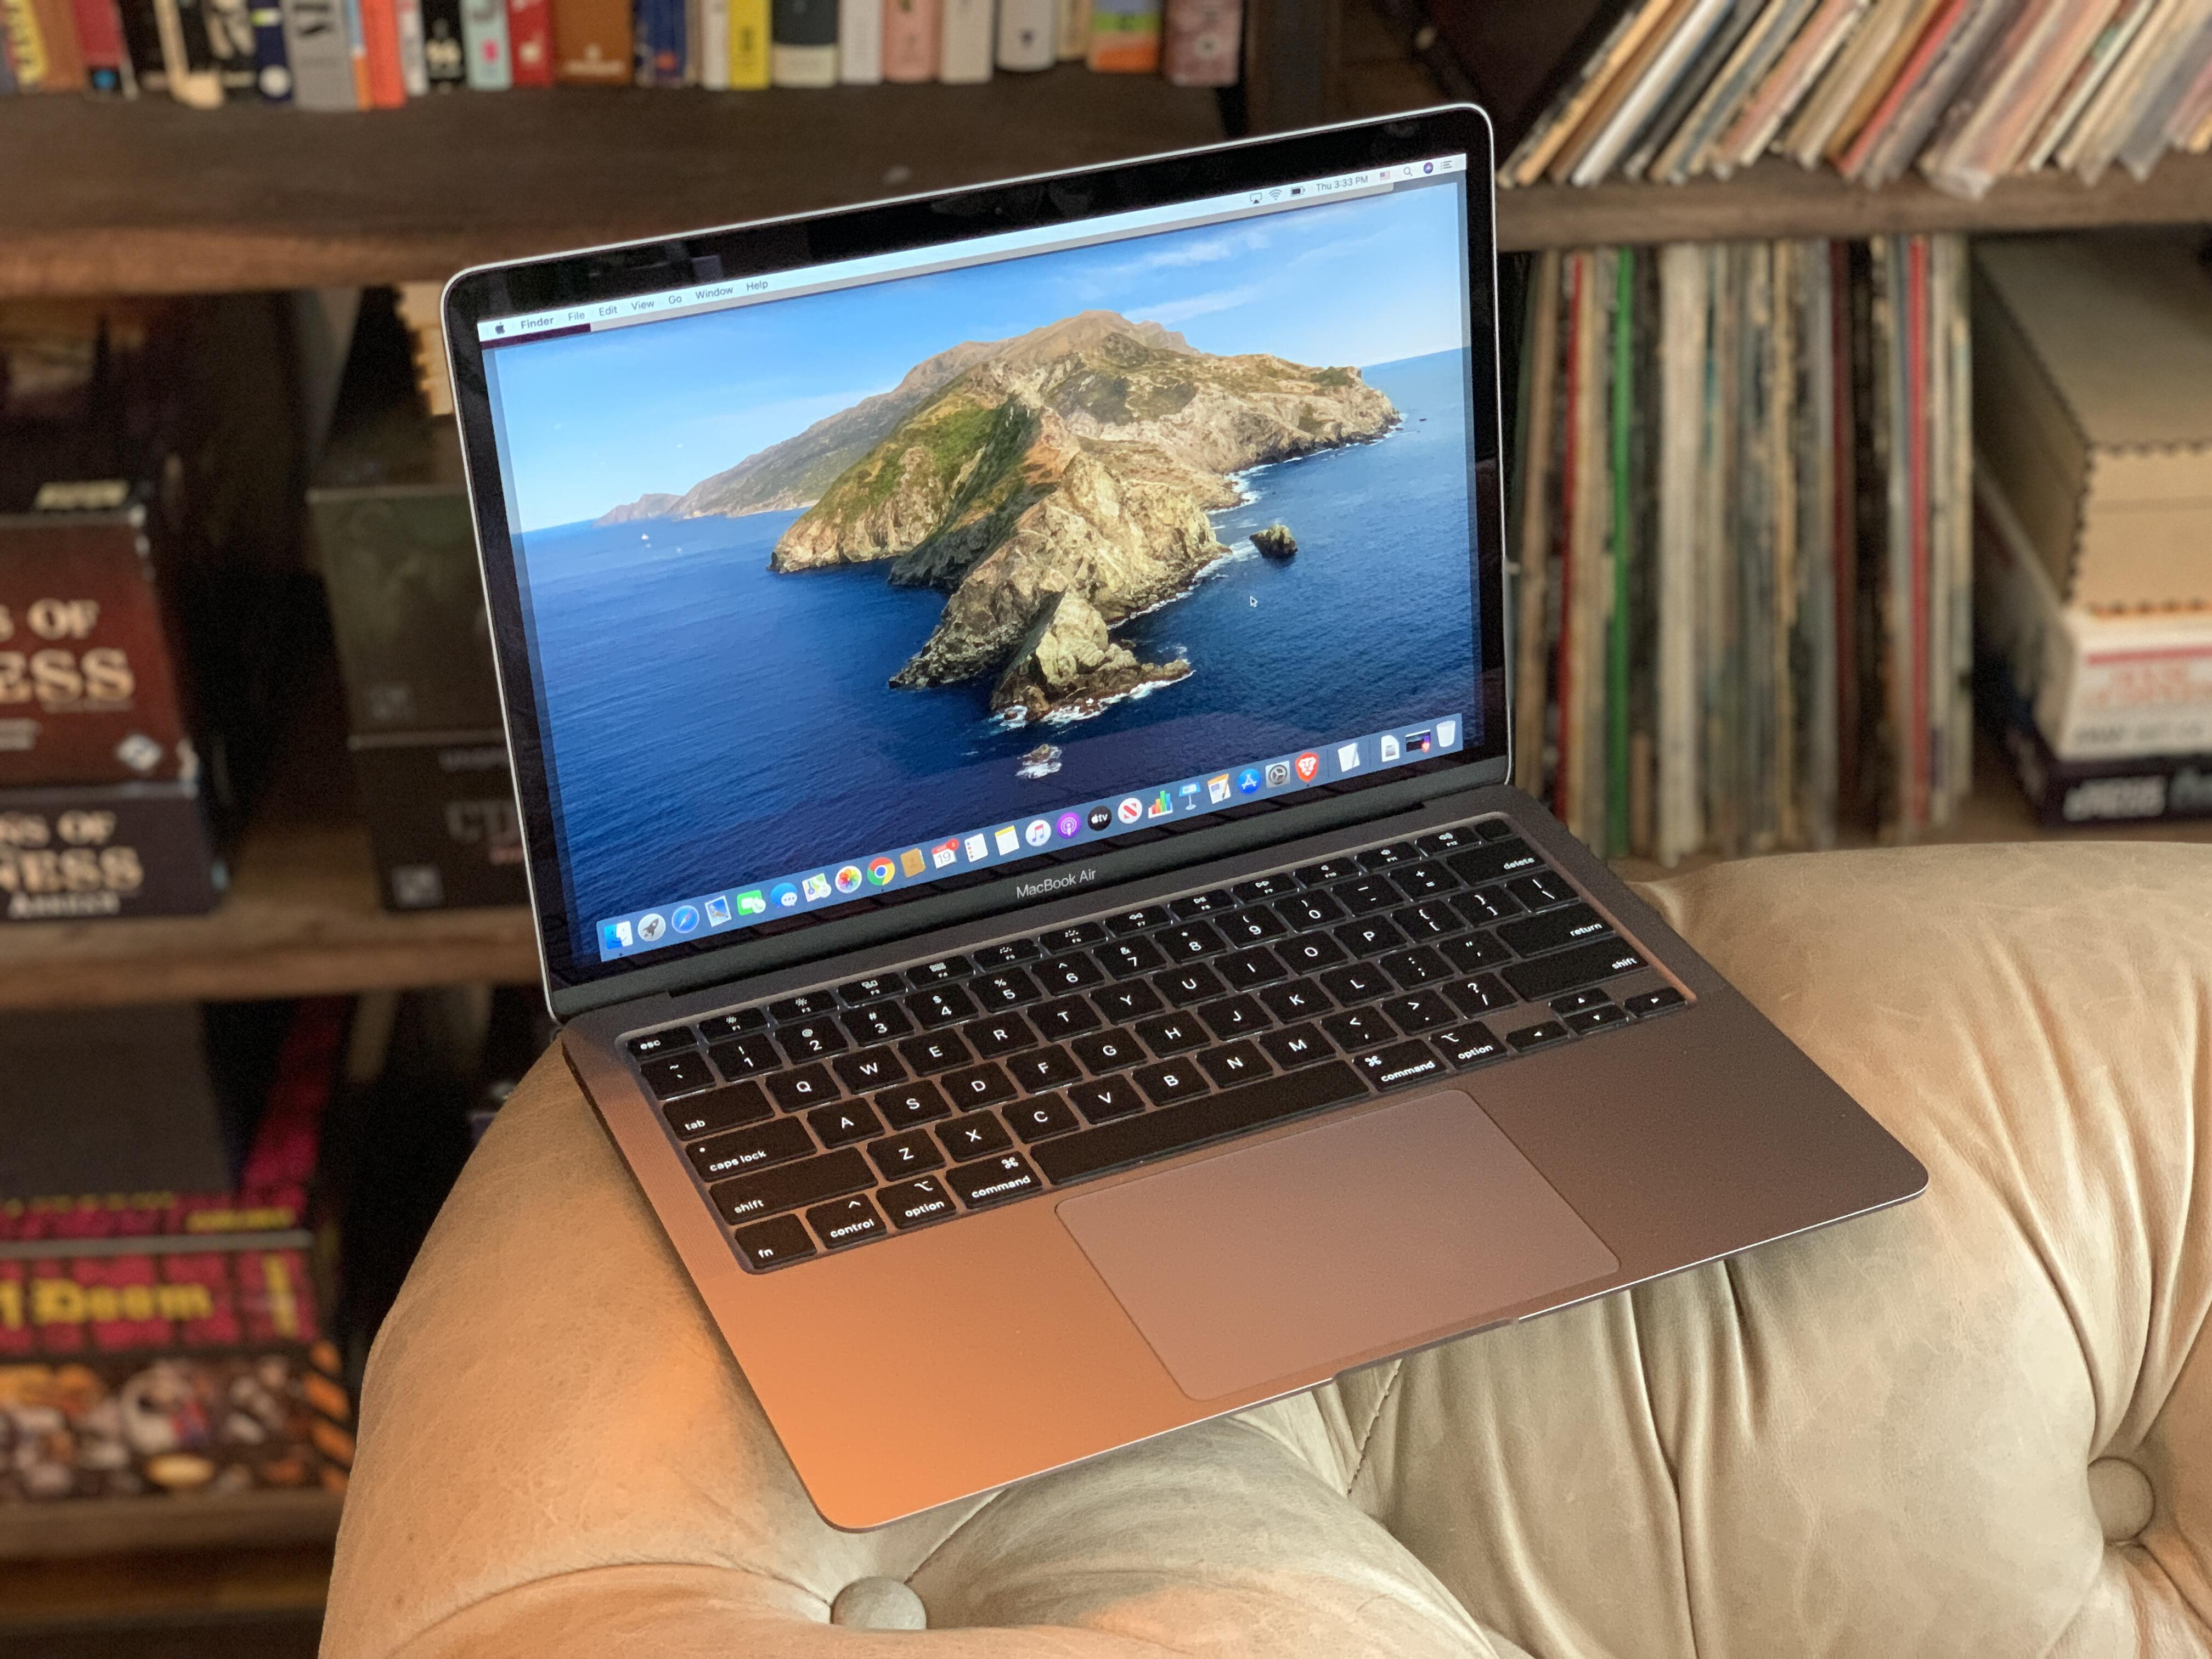 <p>The Mac has plenty of hidden features, you just have to find them.&nbsp;</p>